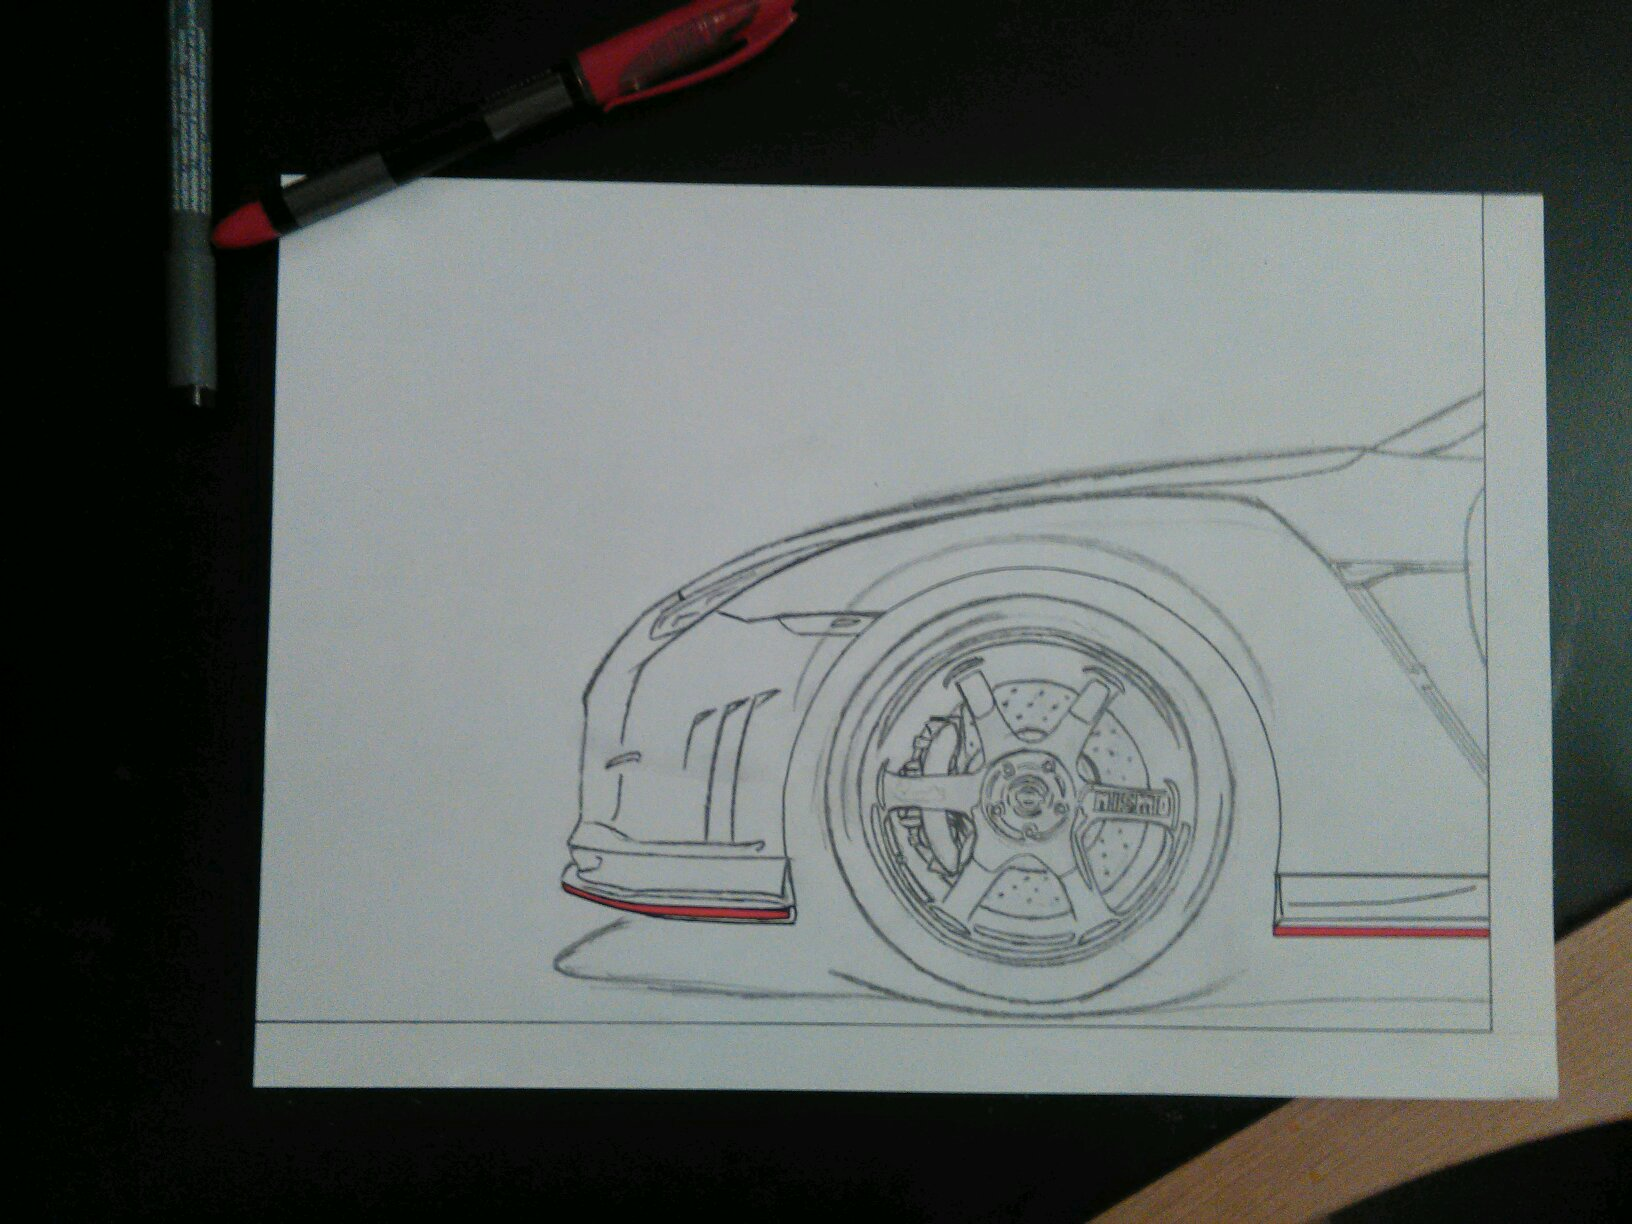 Nissan Gtr R35 Nismo Drawing Sketch Car Art